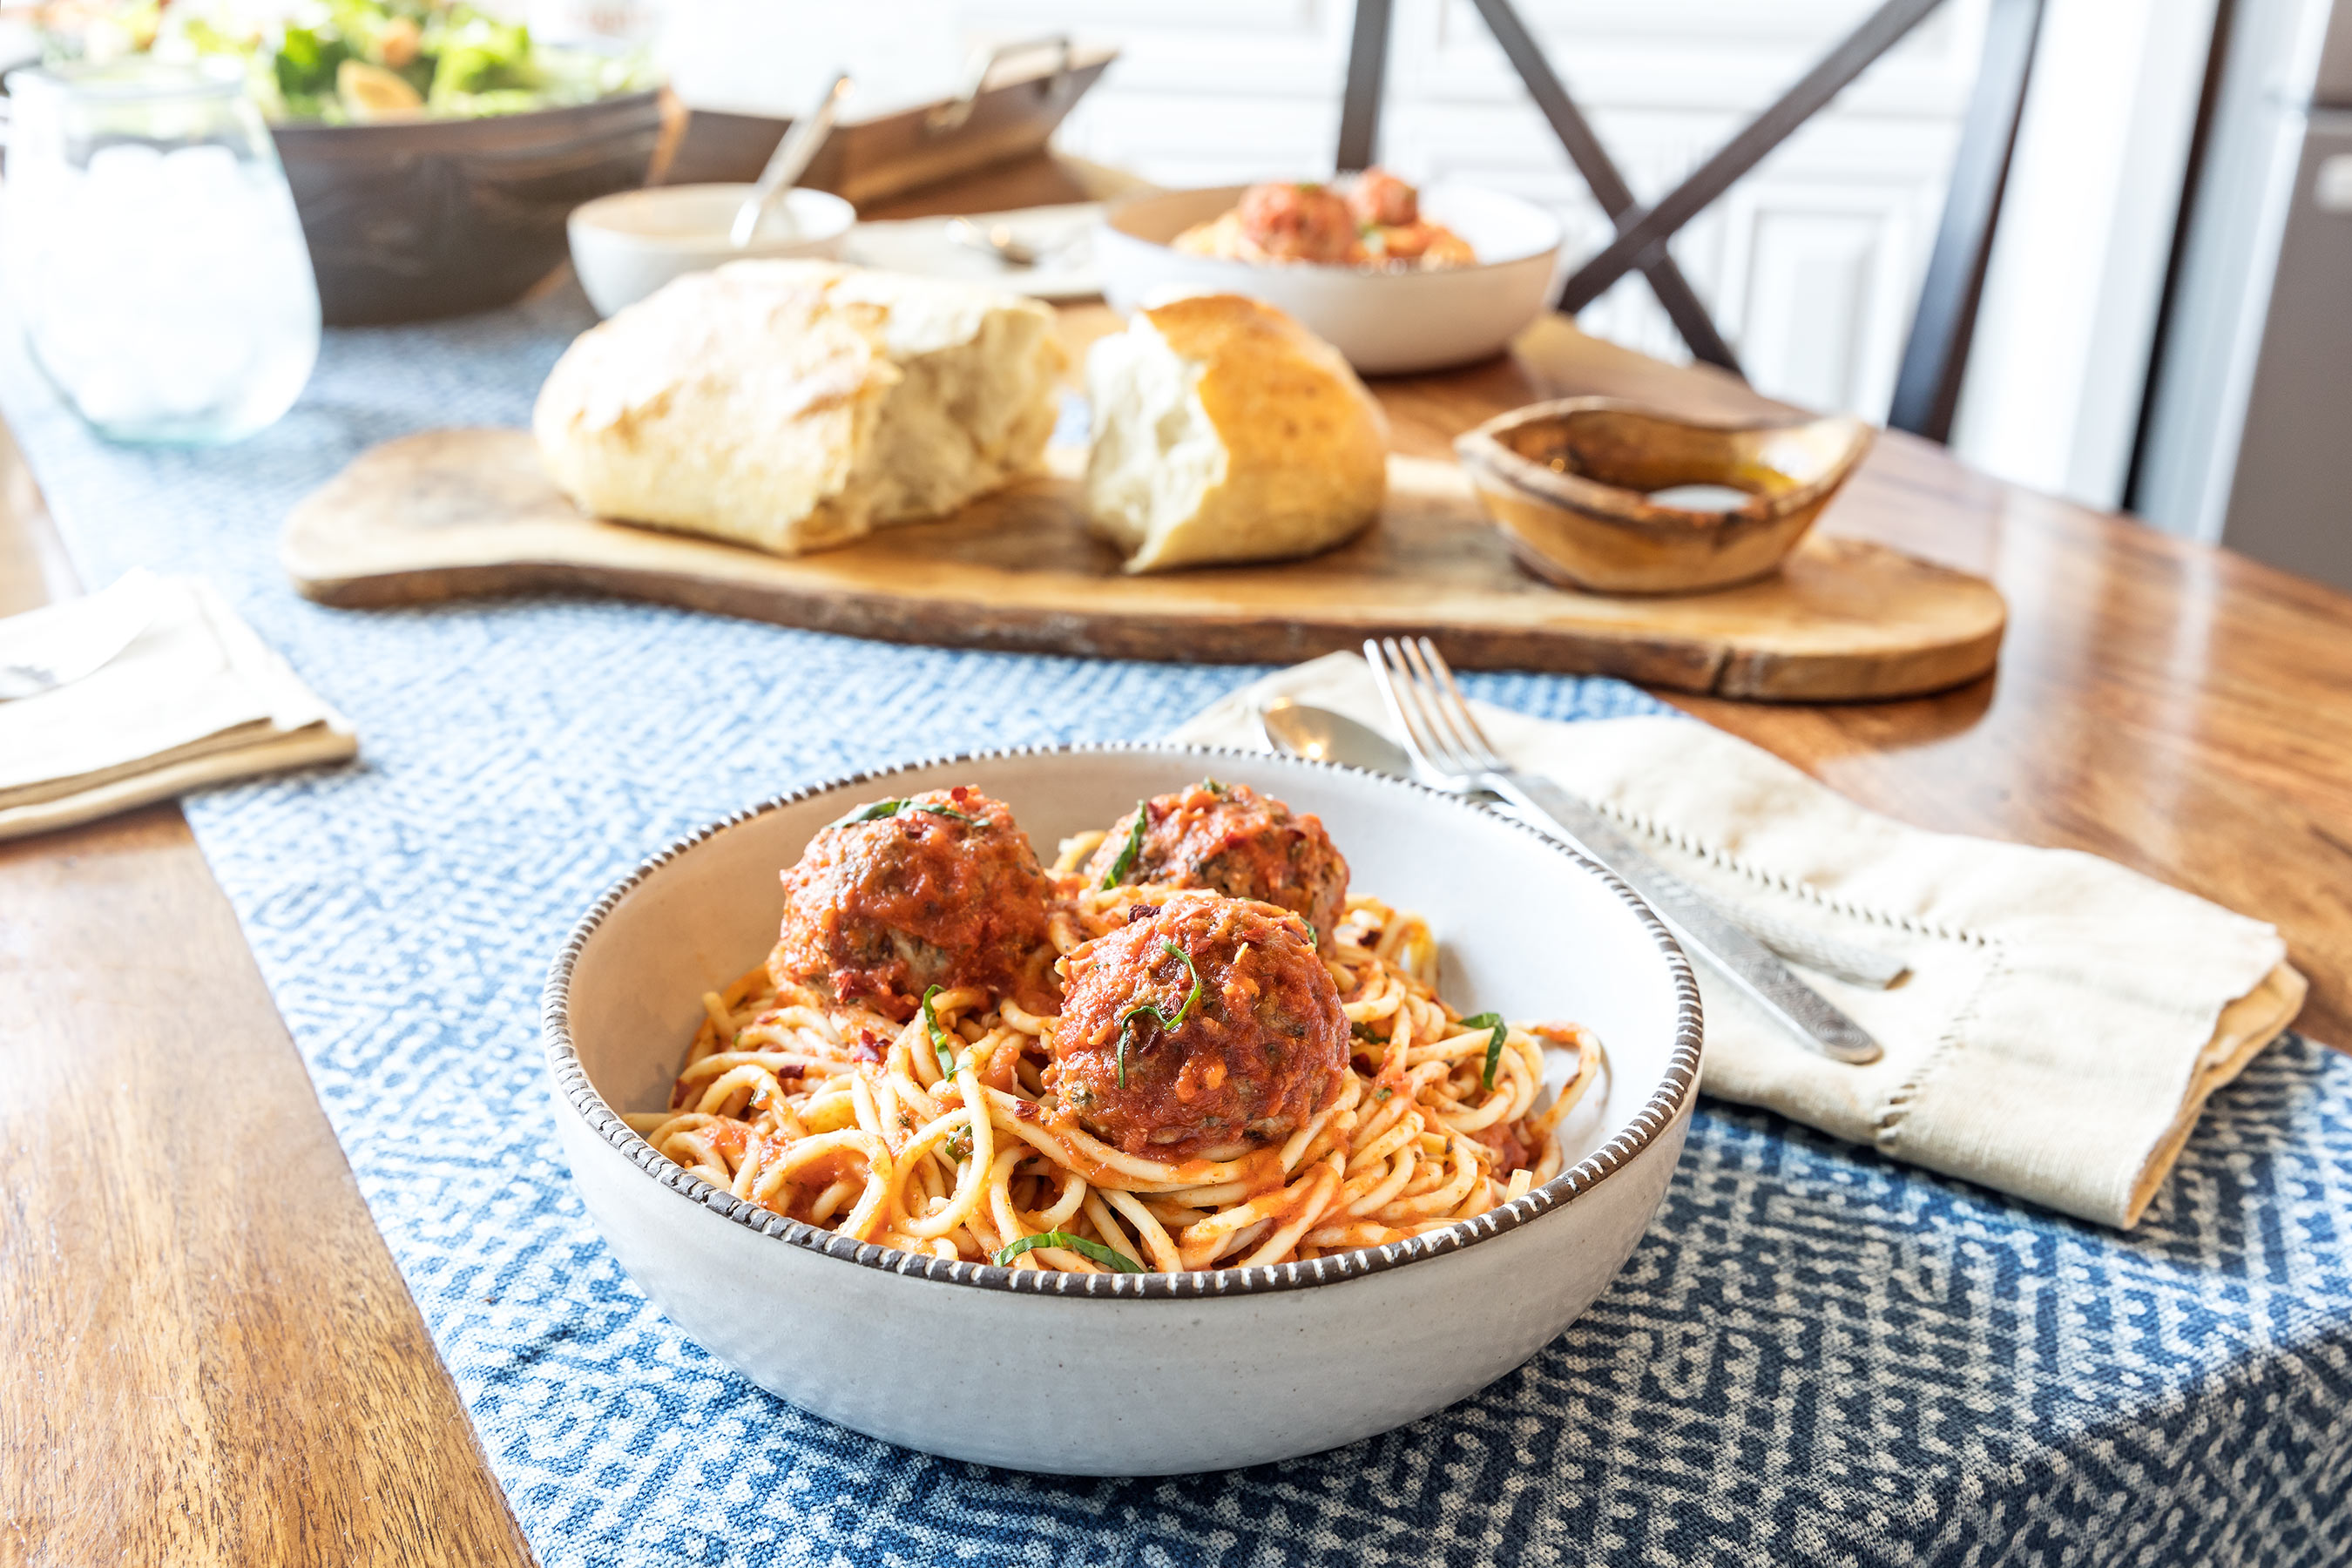 Spaghetti and meatballs on a table with bread and salad in the back